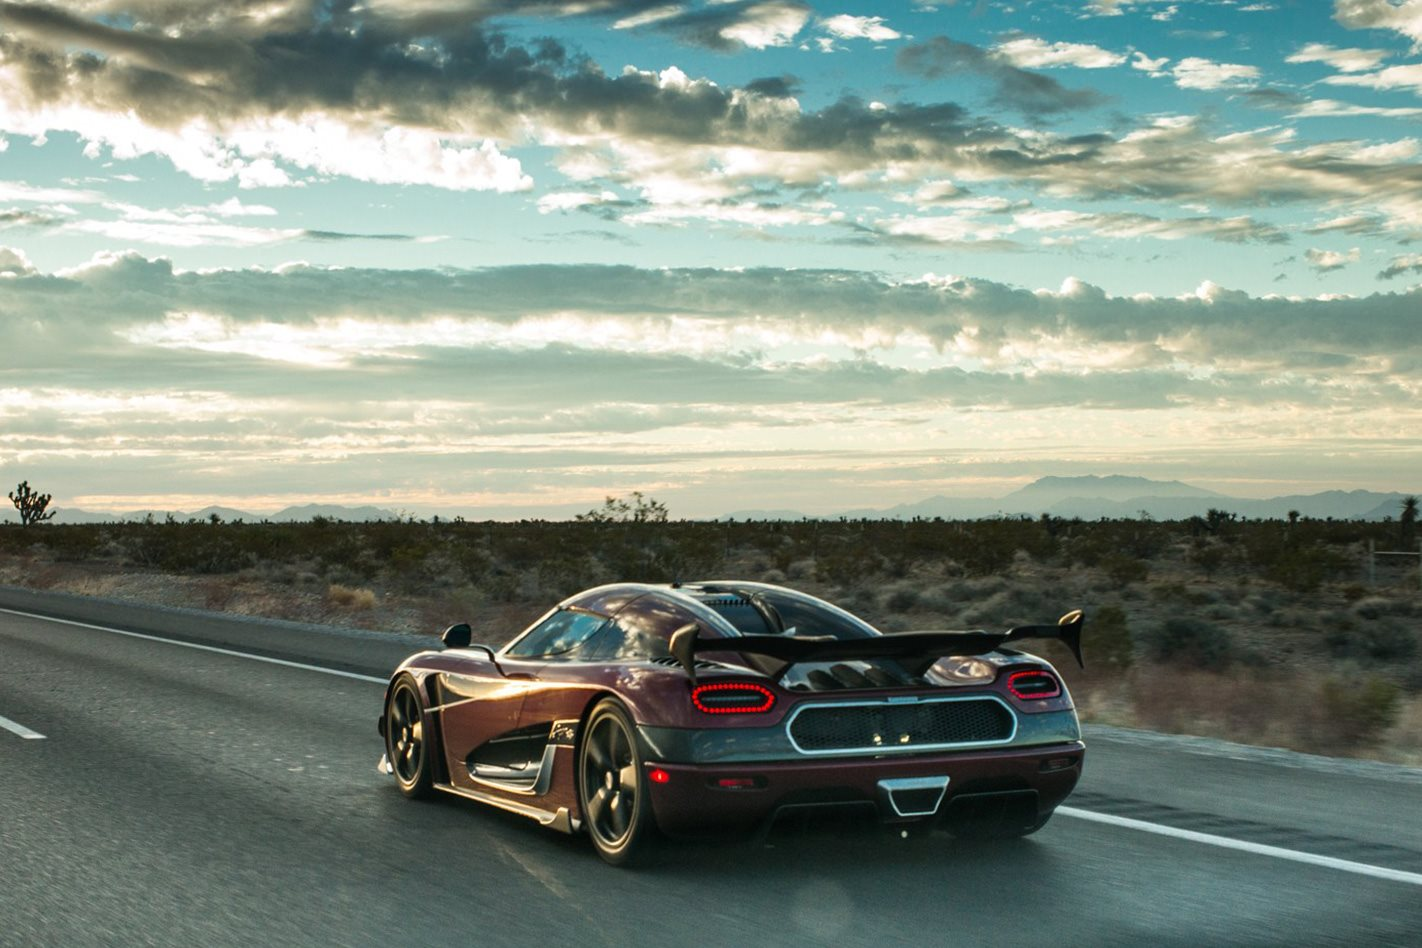 The Koenigsegg Agera Rs Claims Five World Records